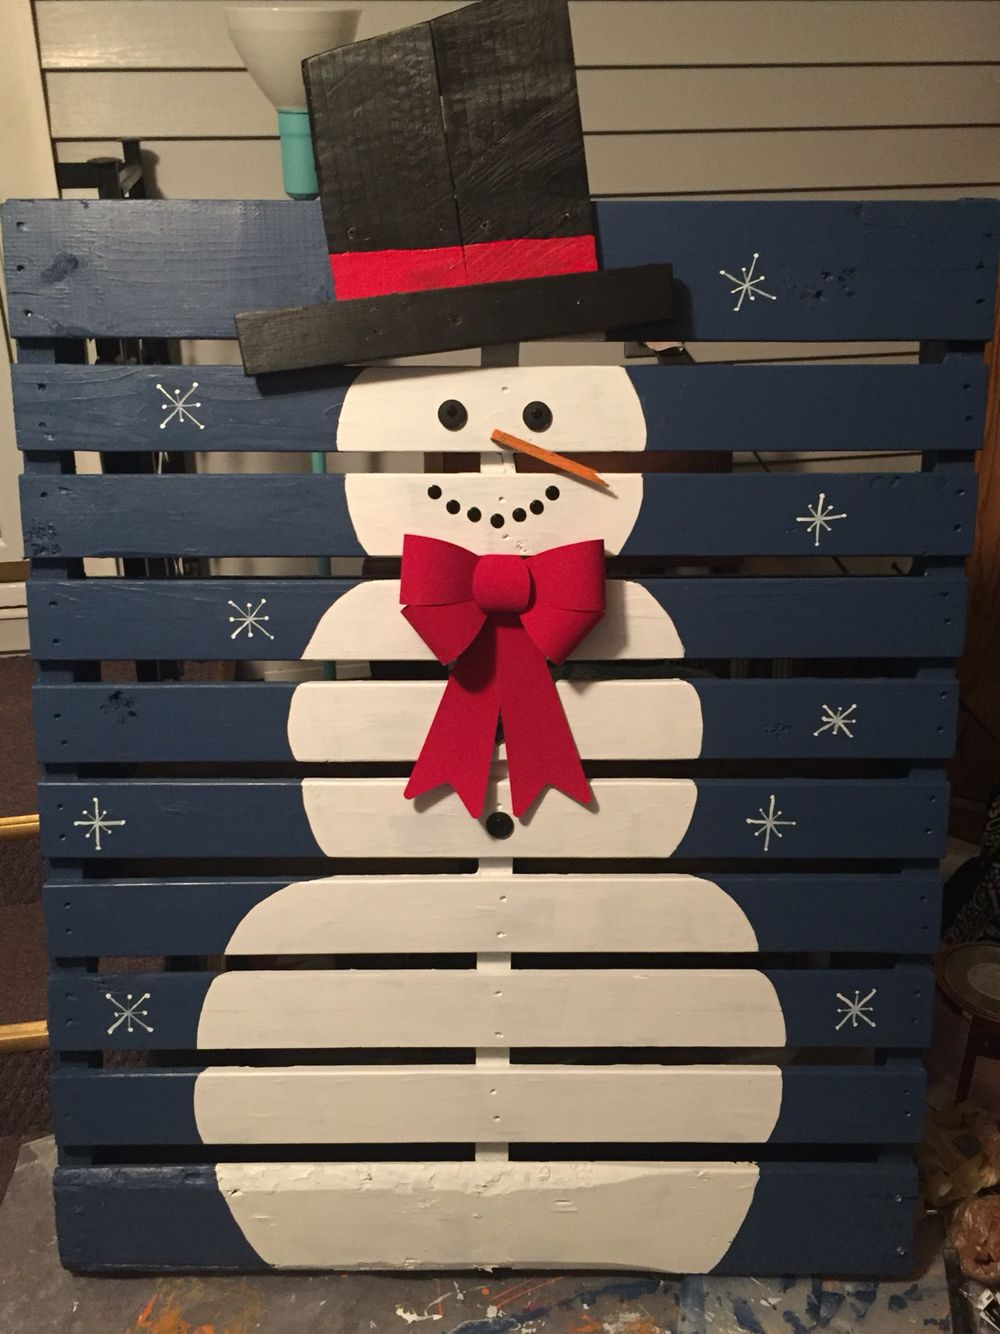 How to decorate your yard for christmas on a budget - Unique And Creative Christmas Ideas Make This Cute Snowman Pallet As A Fun Decoration